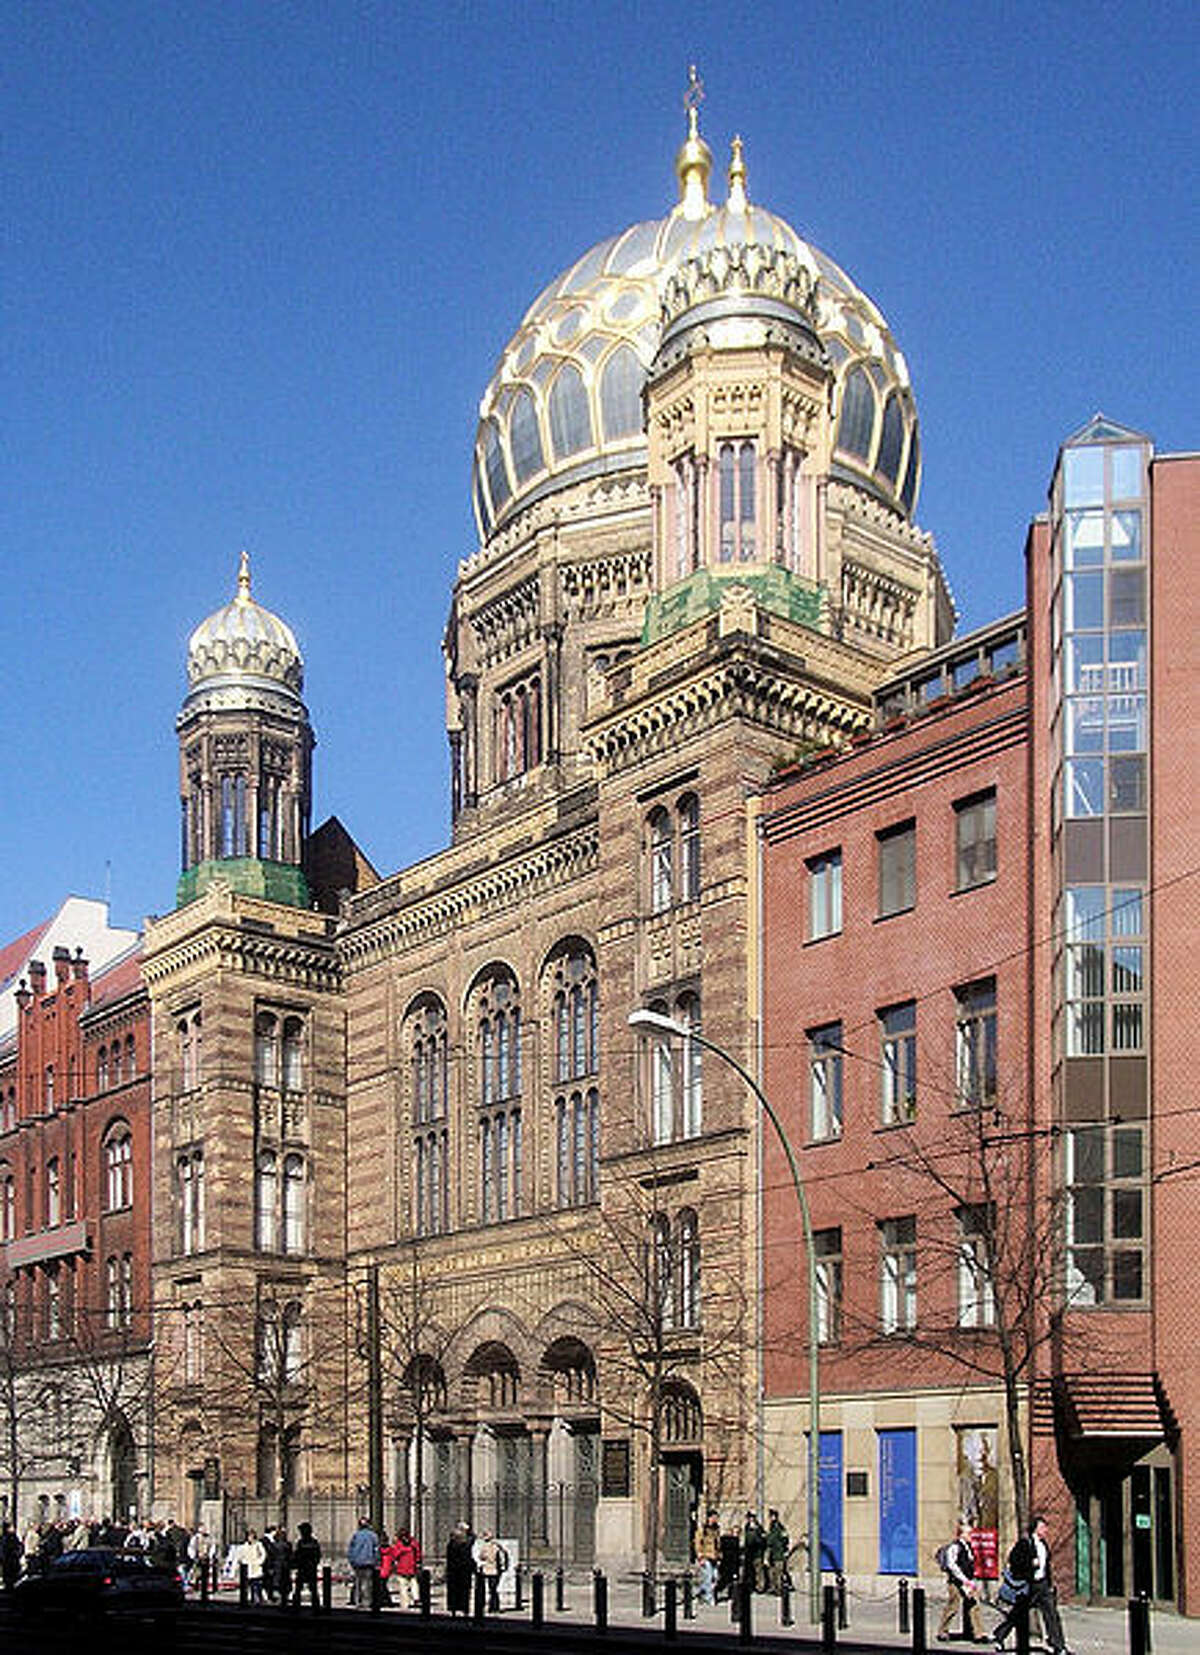 The 19th century New Synagogue with the Moorish-style dome is a Berlin landmark where religious services are occasionally conducted. Rebuilt after being damaged in 1938 by widespread Nazi attacks on Jews during what is known as Kristallnacht and again by Allied bombers in World War II, today it mainly serves as a museum with offices.